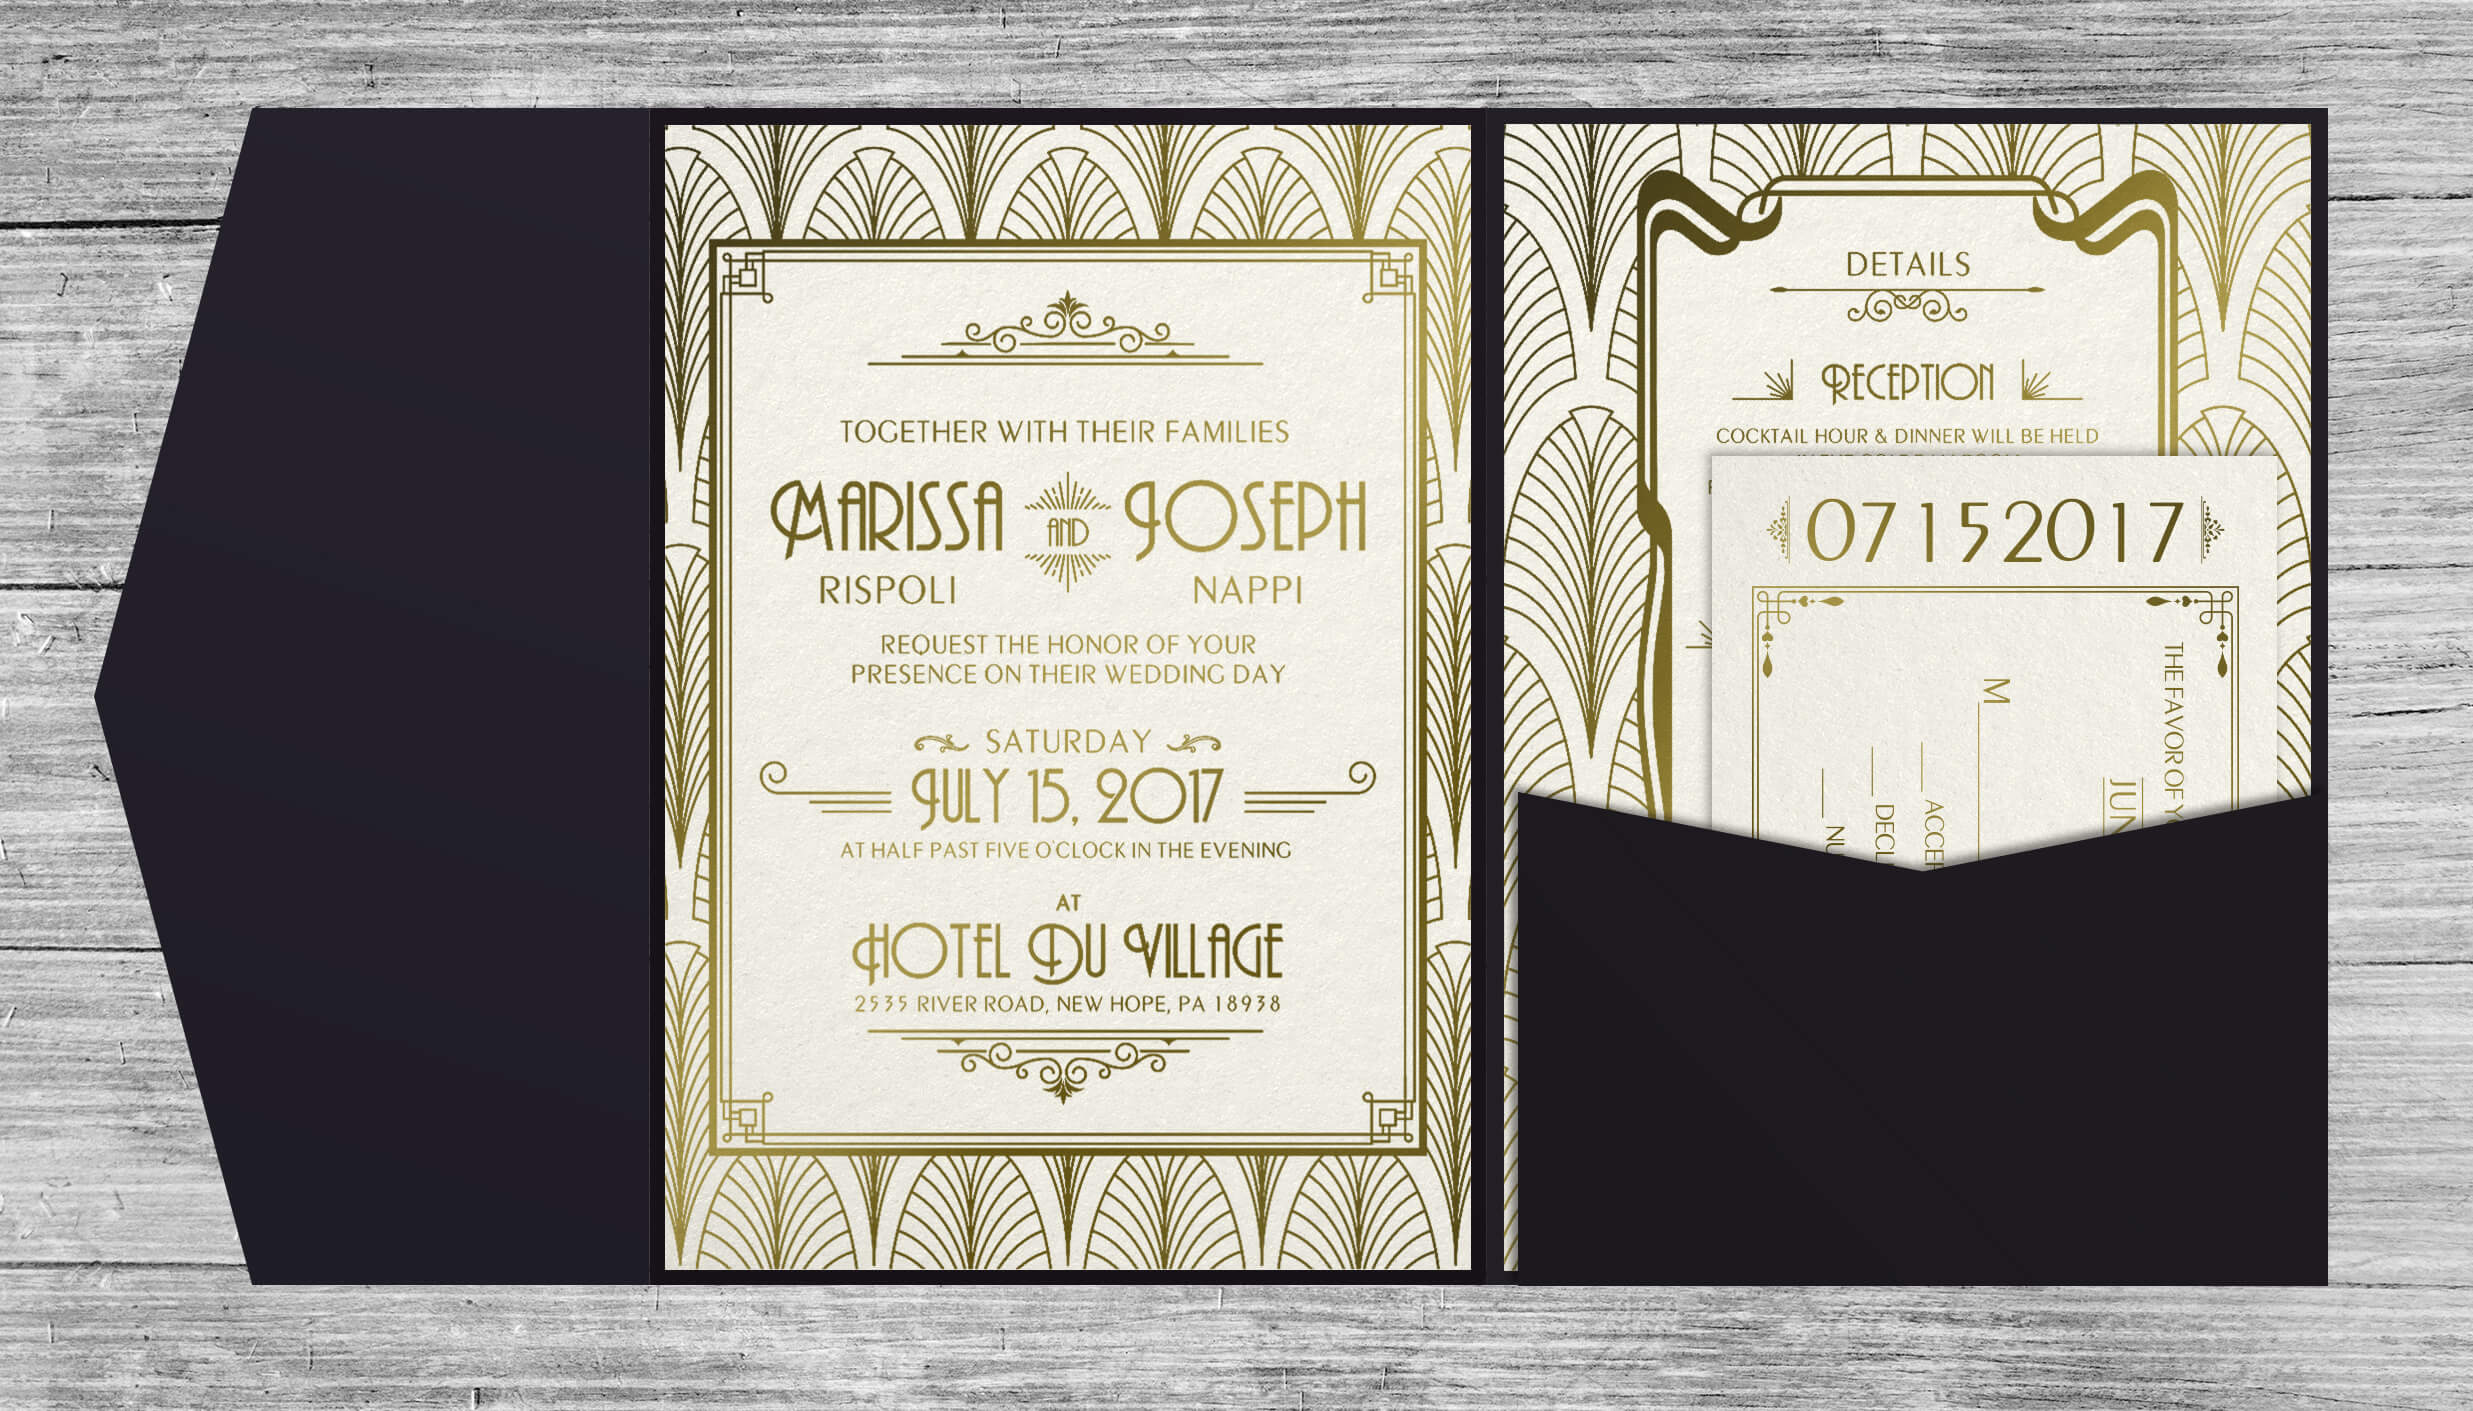 Art Deco Invitations - Inside